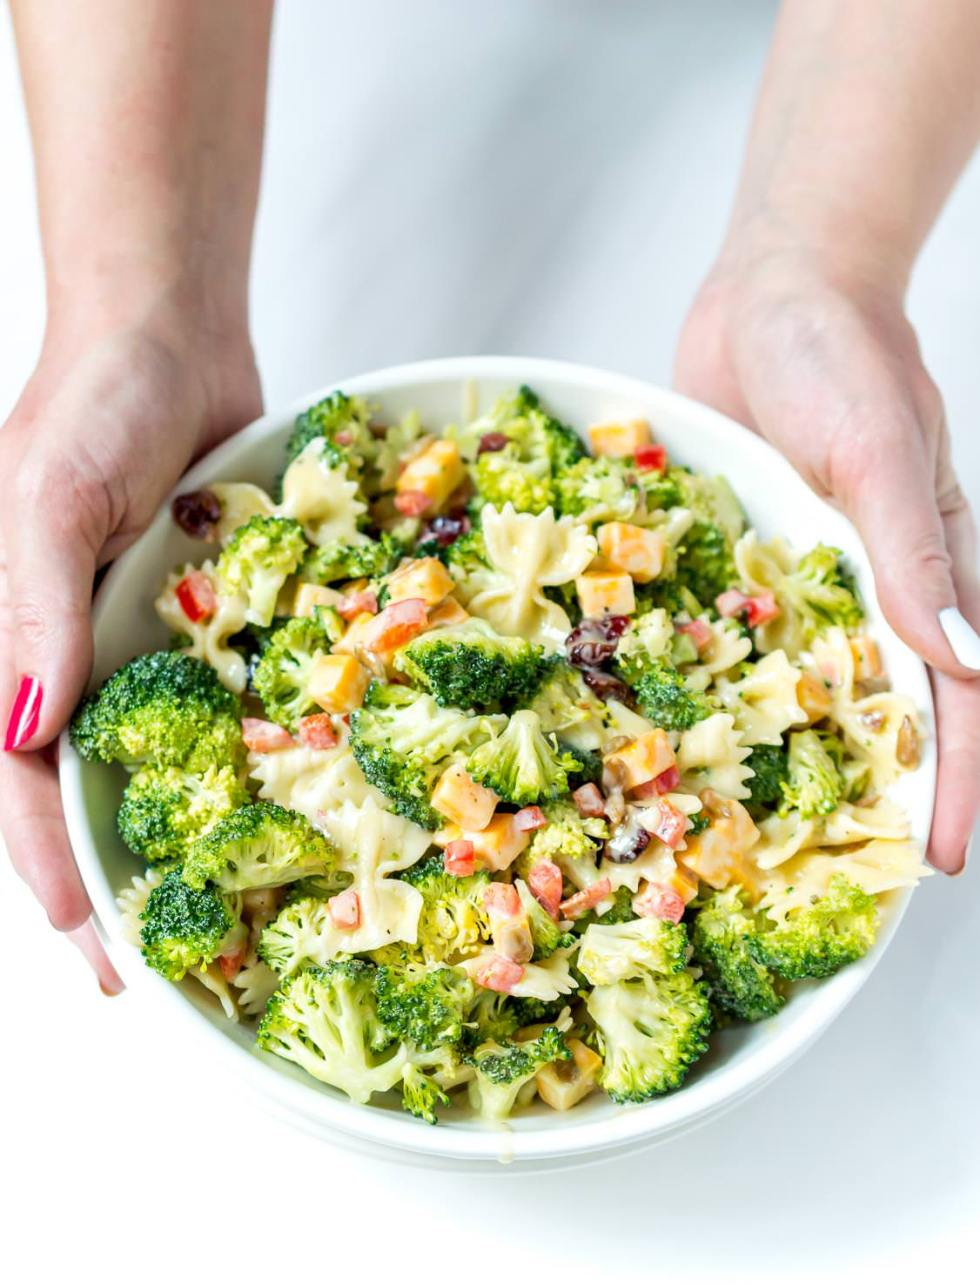 hands holding a white bowl filled with broccoli salad recipe